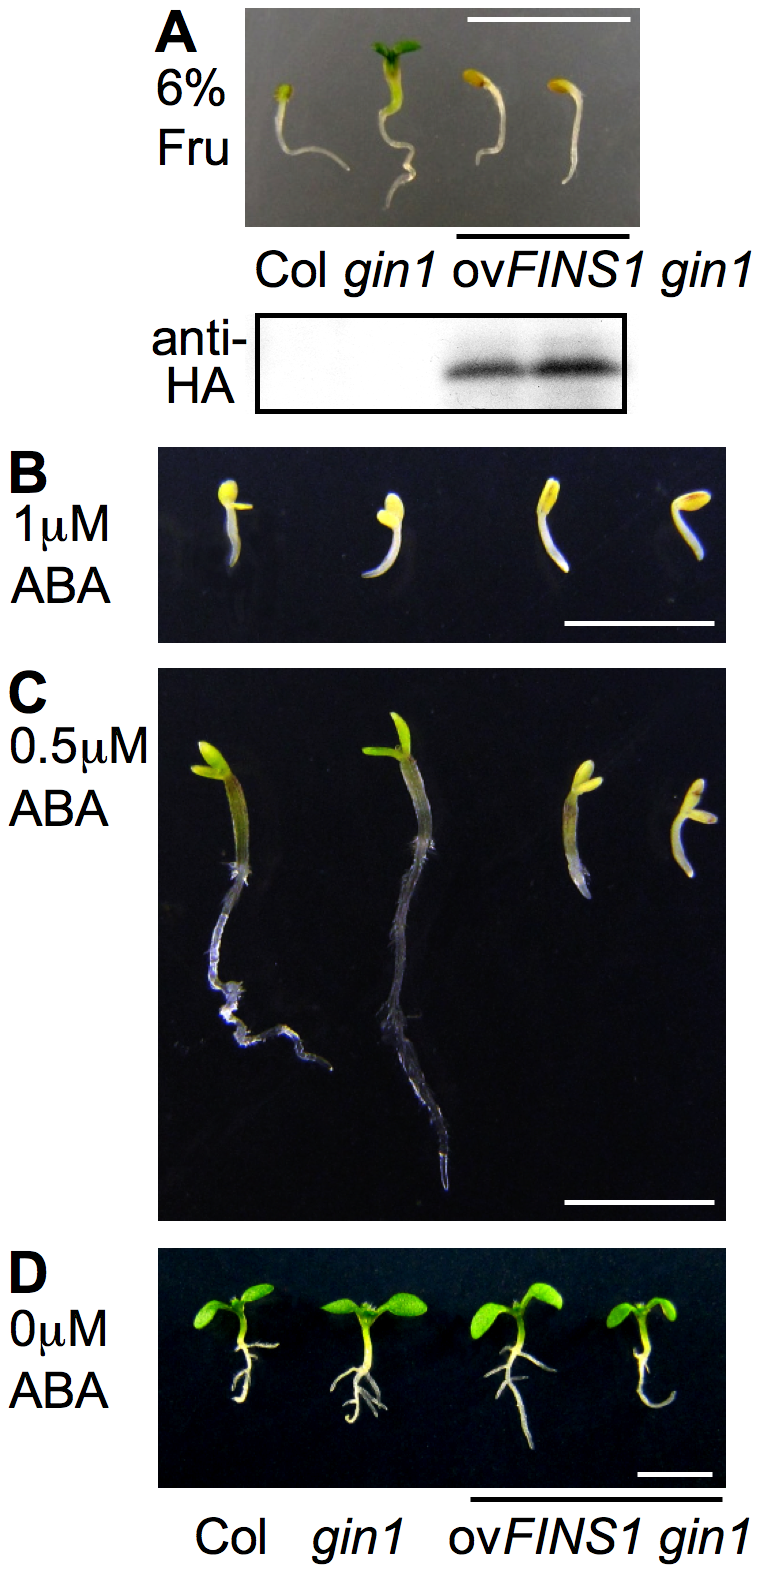 FINS1 in fructose signaling acts downstream of ABA signaling.